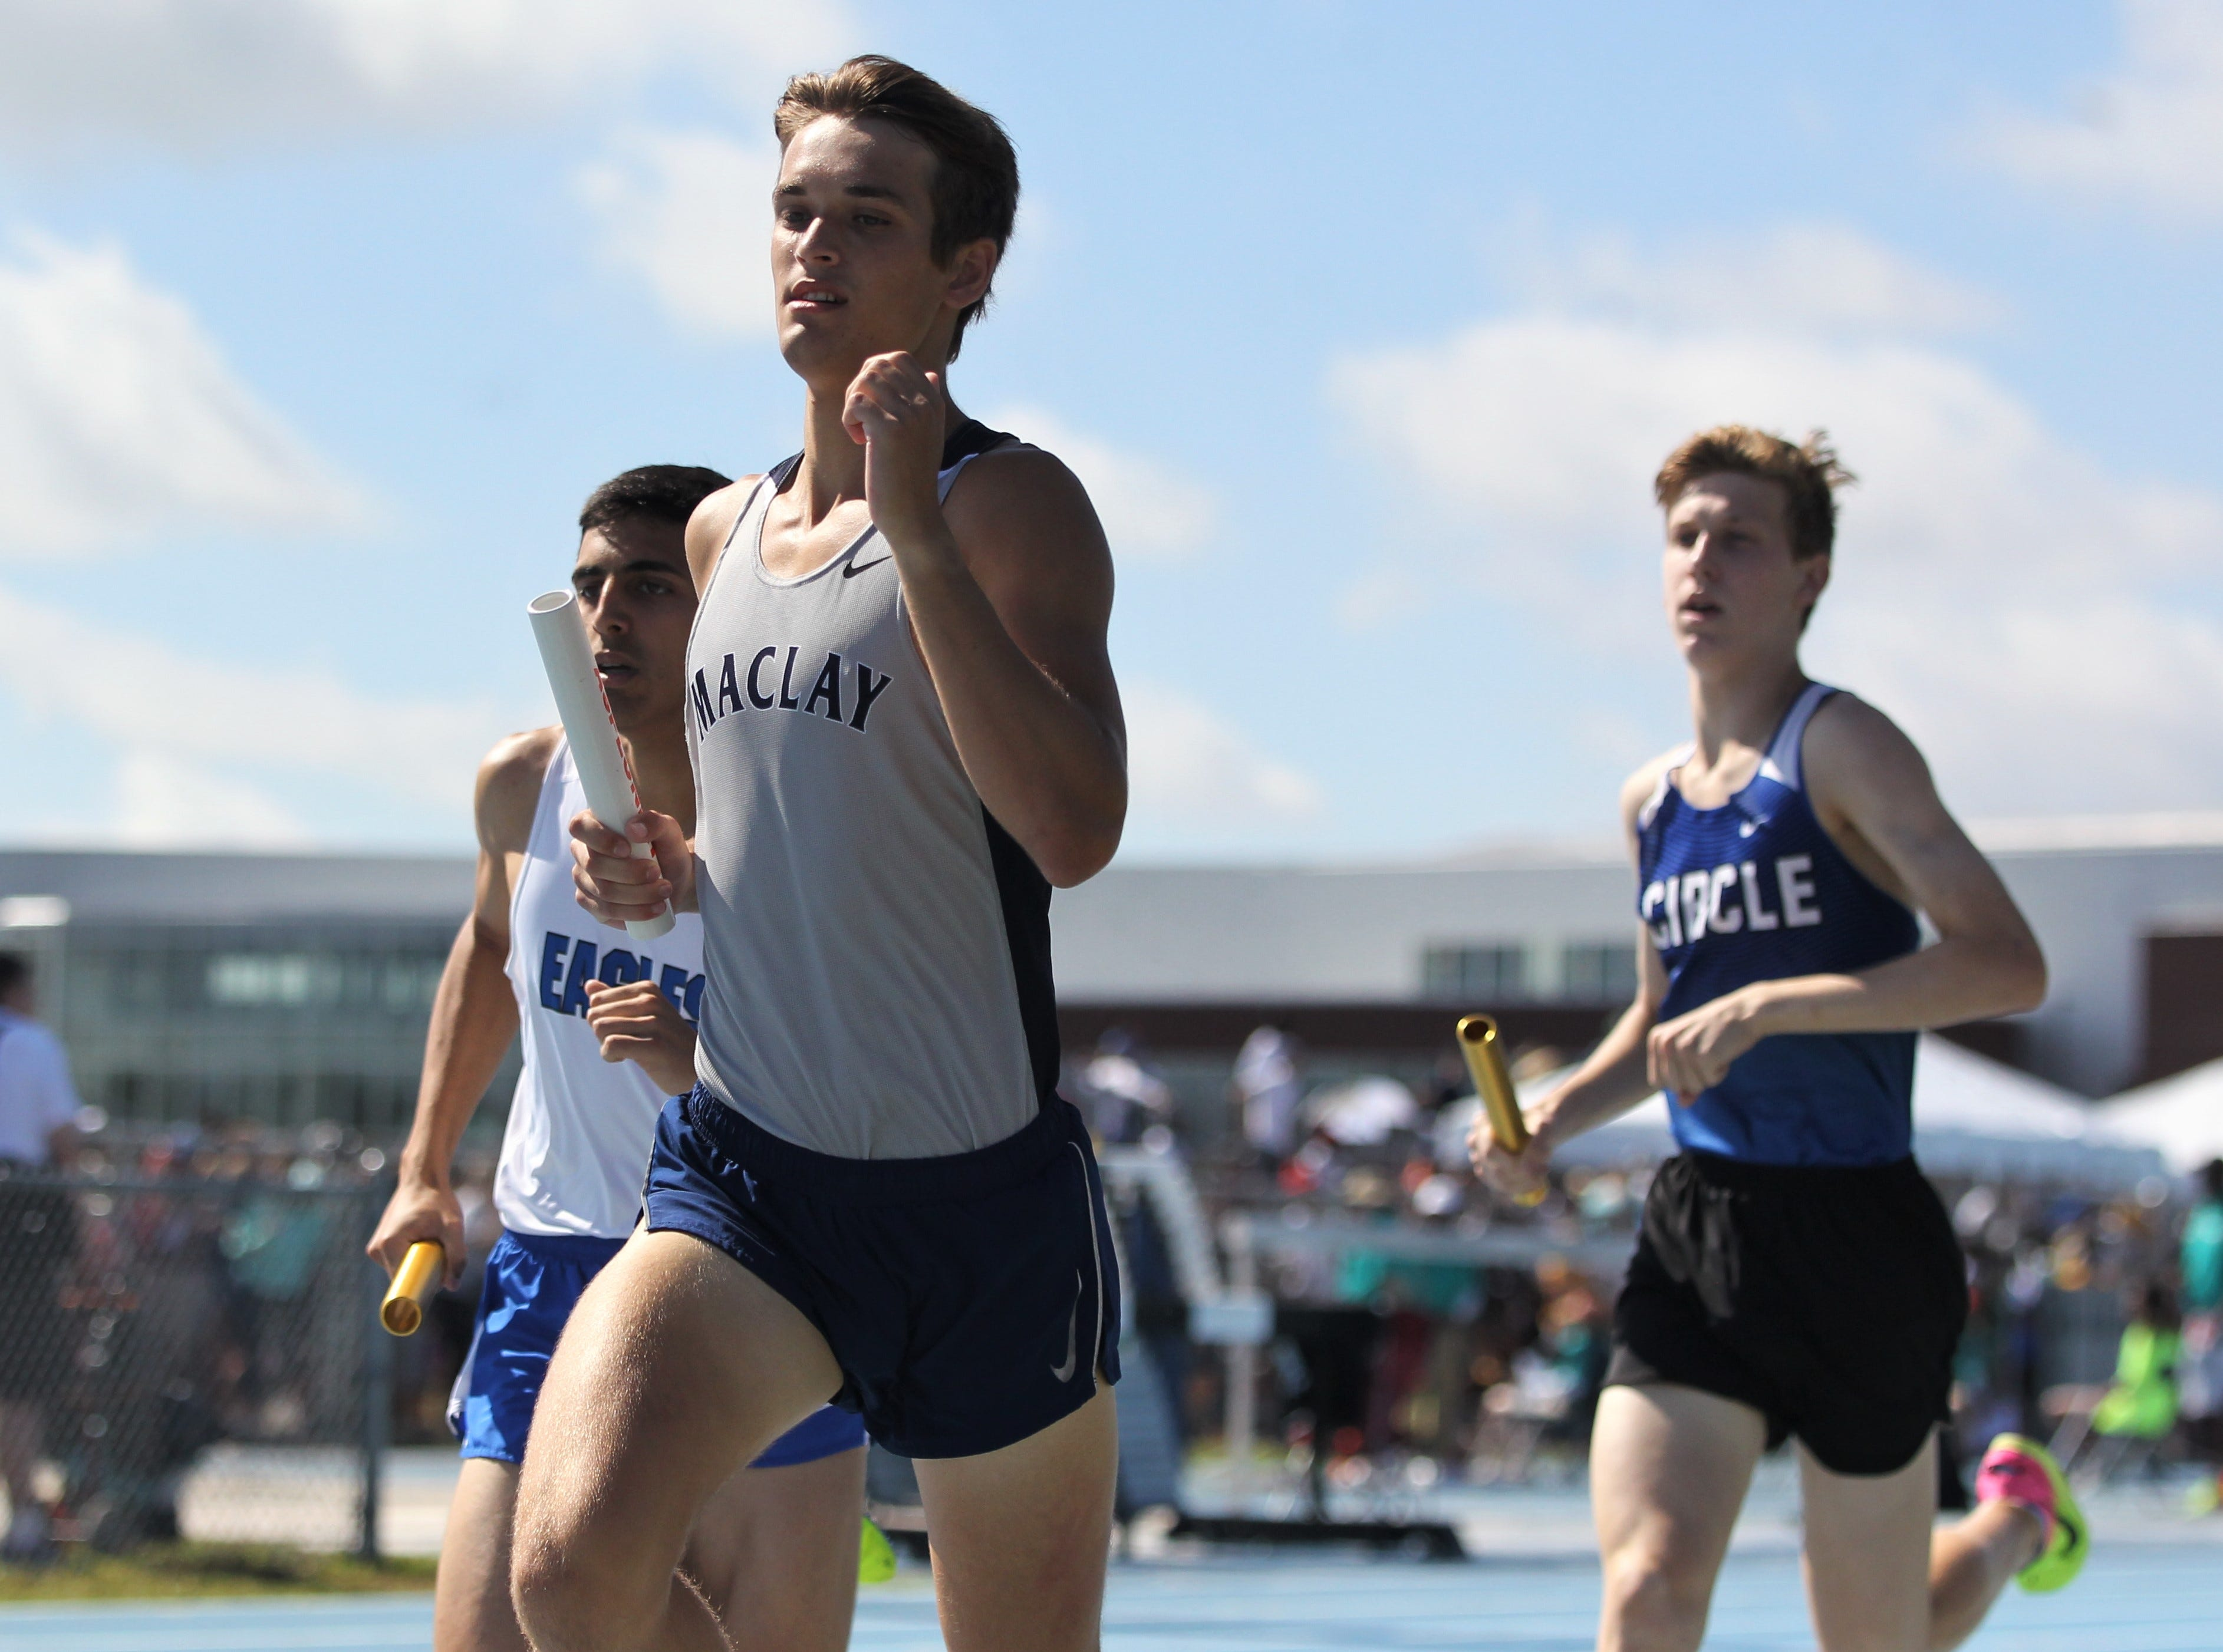 Maclay runs a 4x800 leg during the FHSAA Track and Field State Championships at UNF's Hodges Stadium in Jacksonville on May 4, 2019.